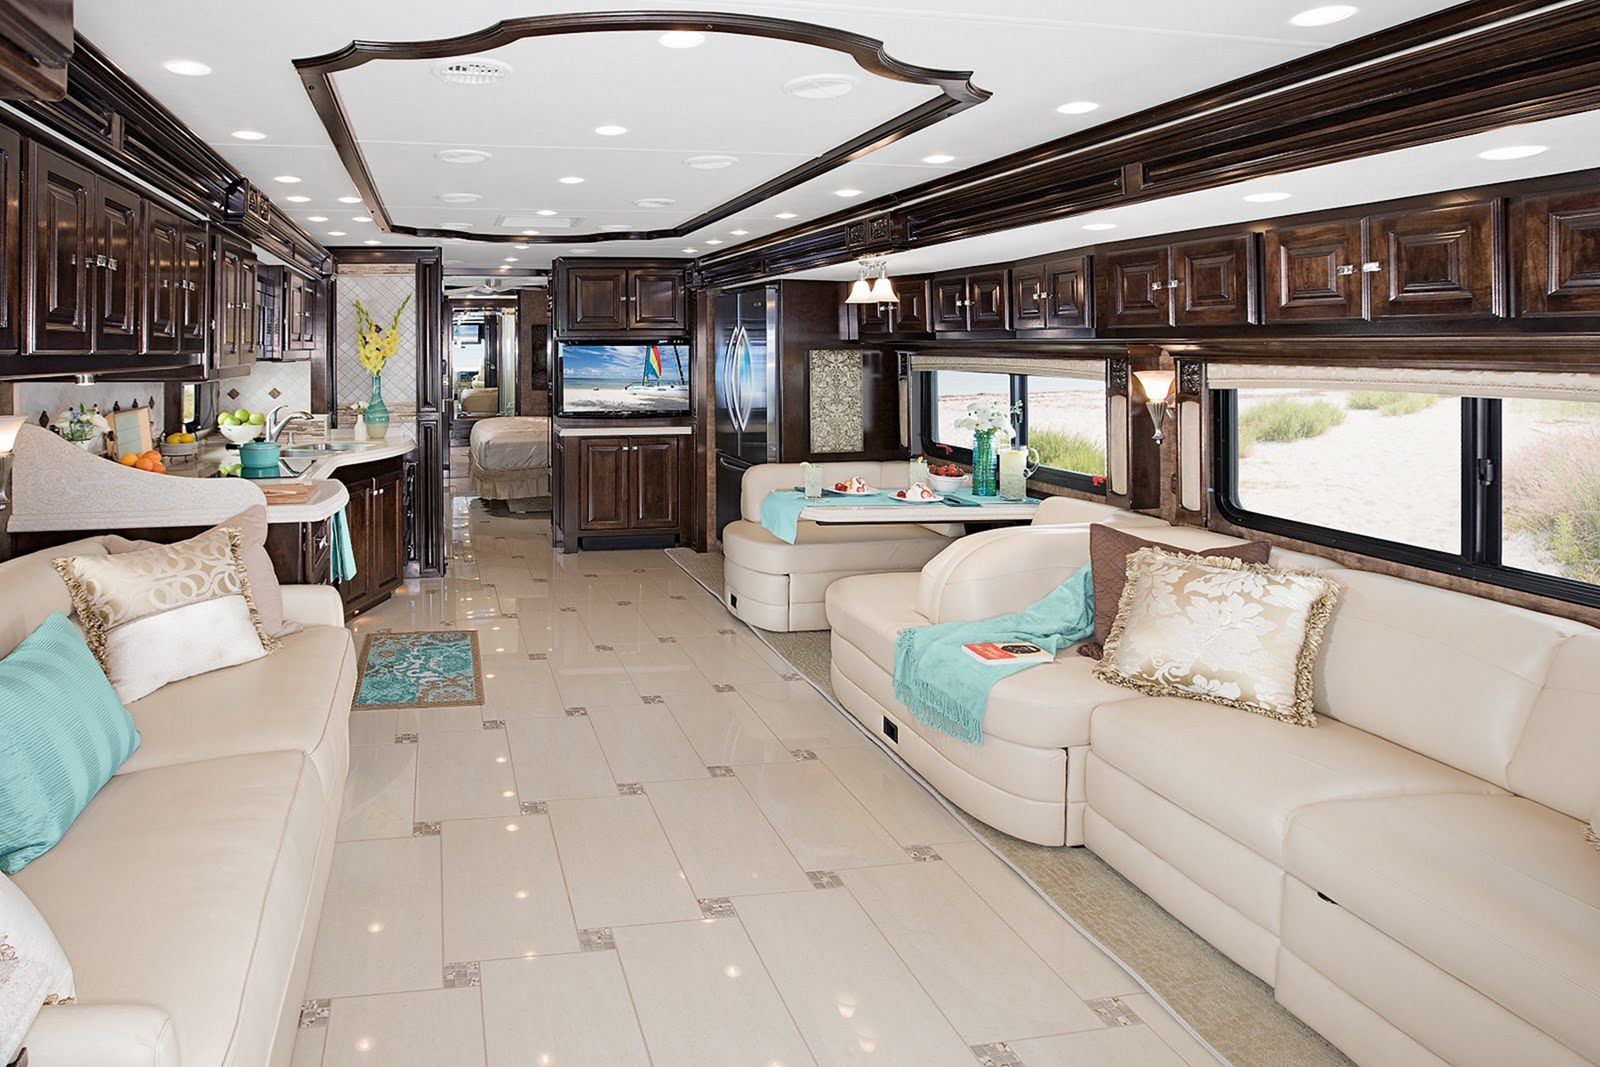 25 Luxurious Motorhomes Interior Design Ideas With Best Picture